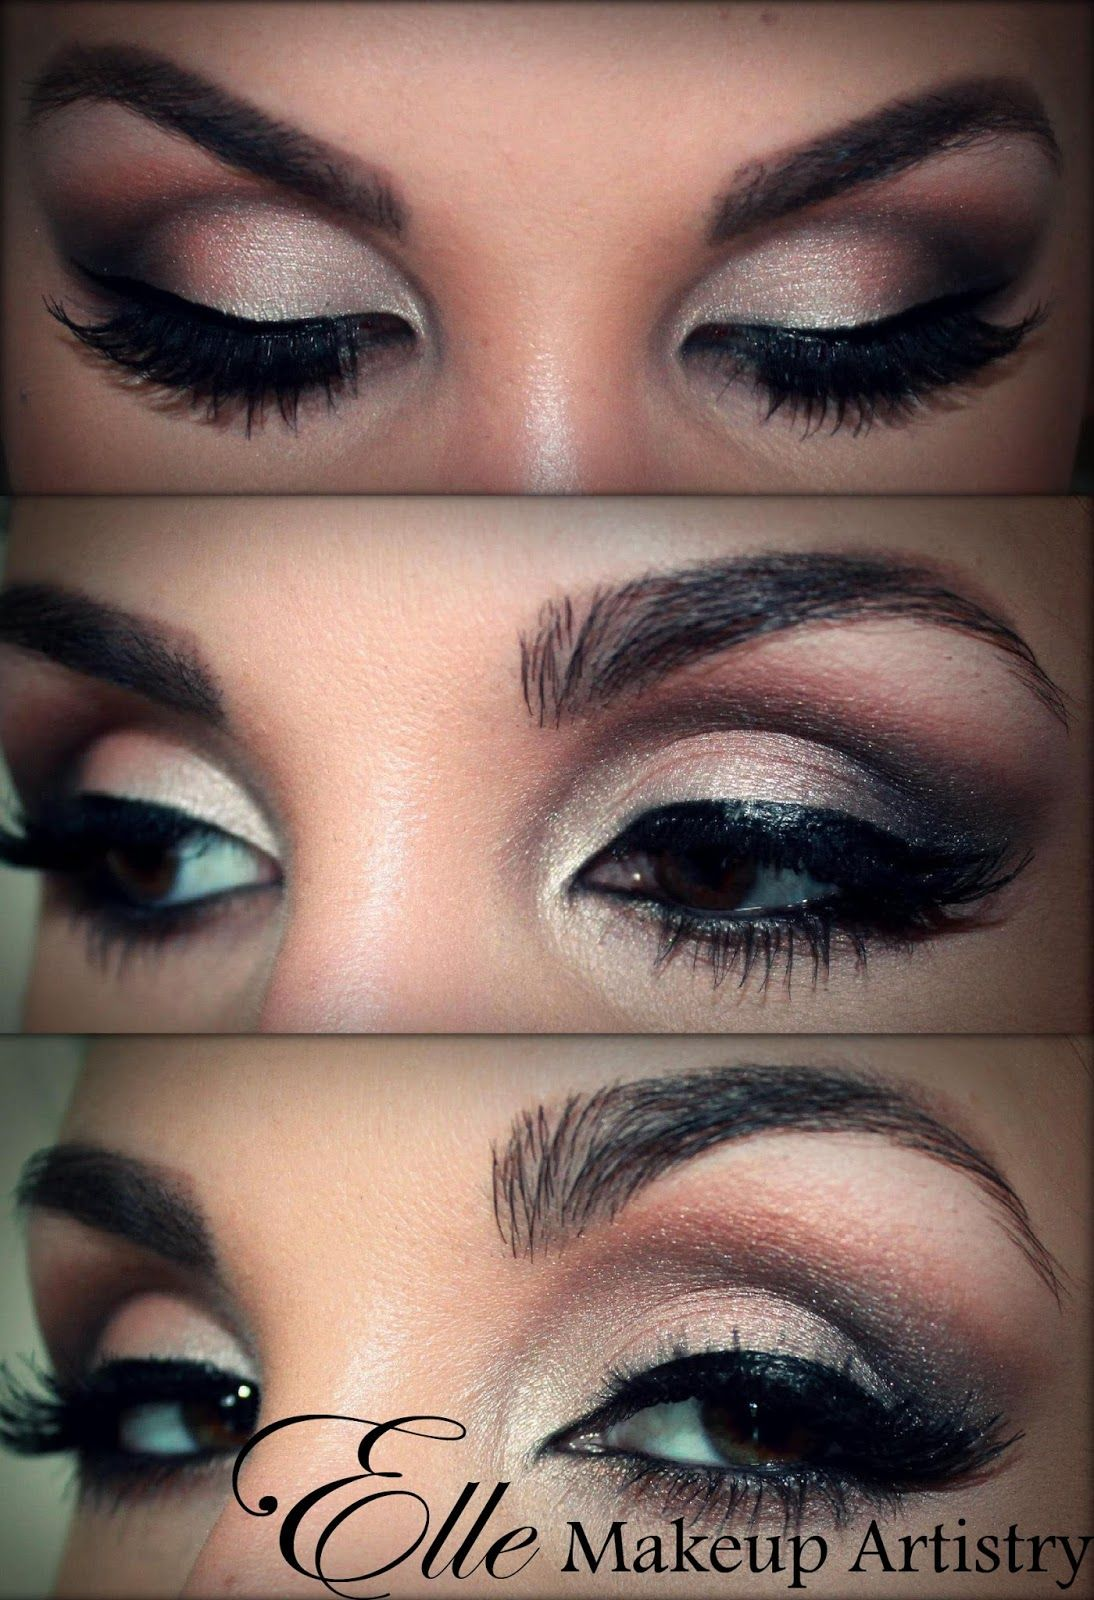 Eyes Green makeup for dramatic effects